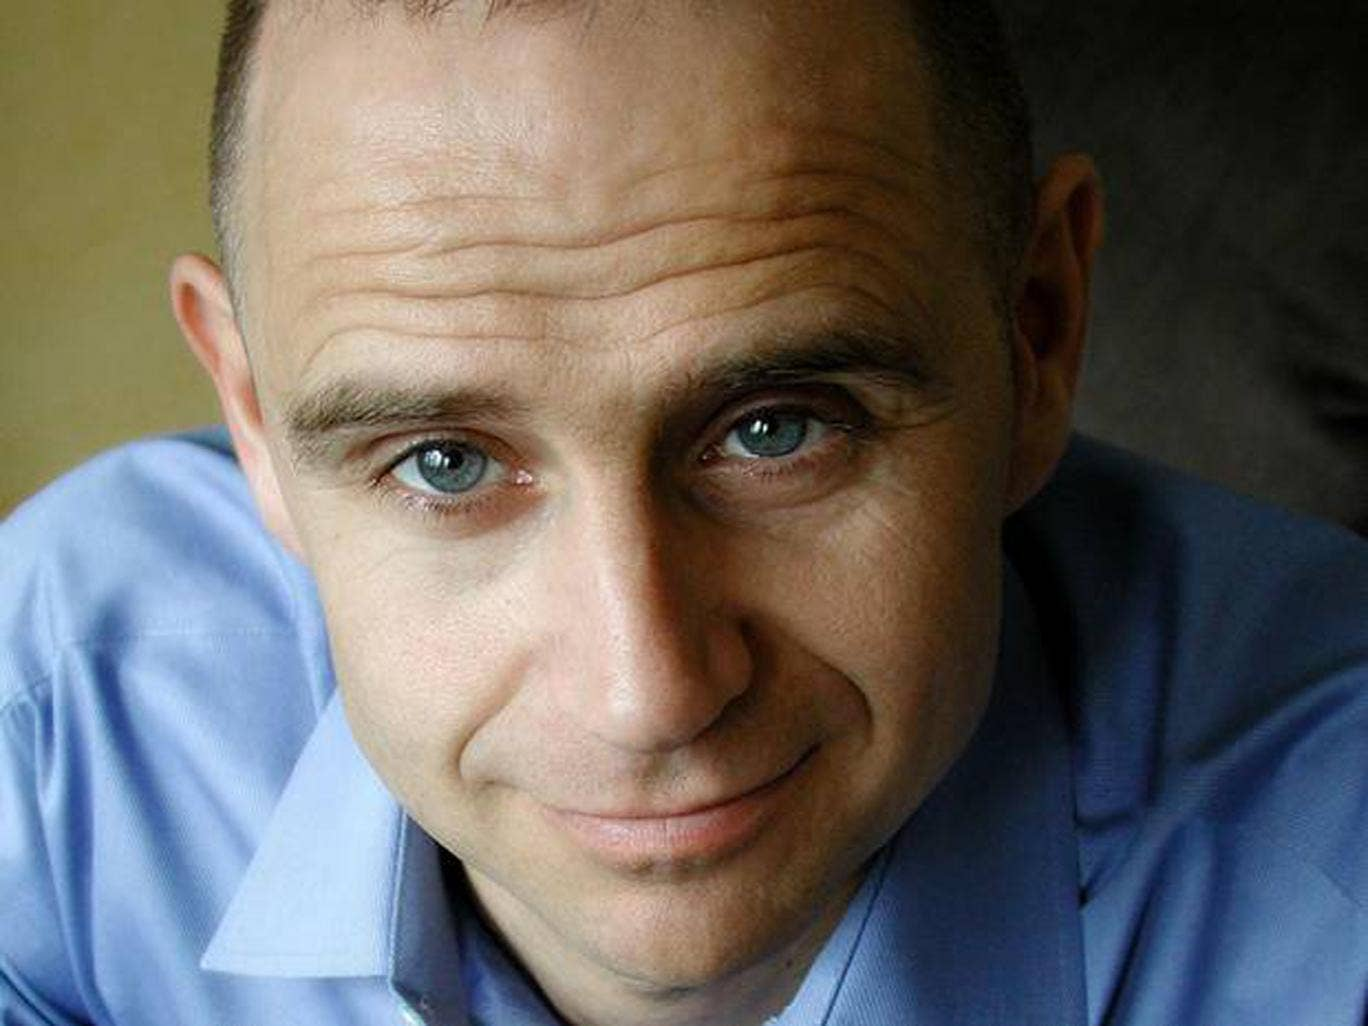 Radio 4's Today programme host Evan Davis has been announced as the new face of Newsnight